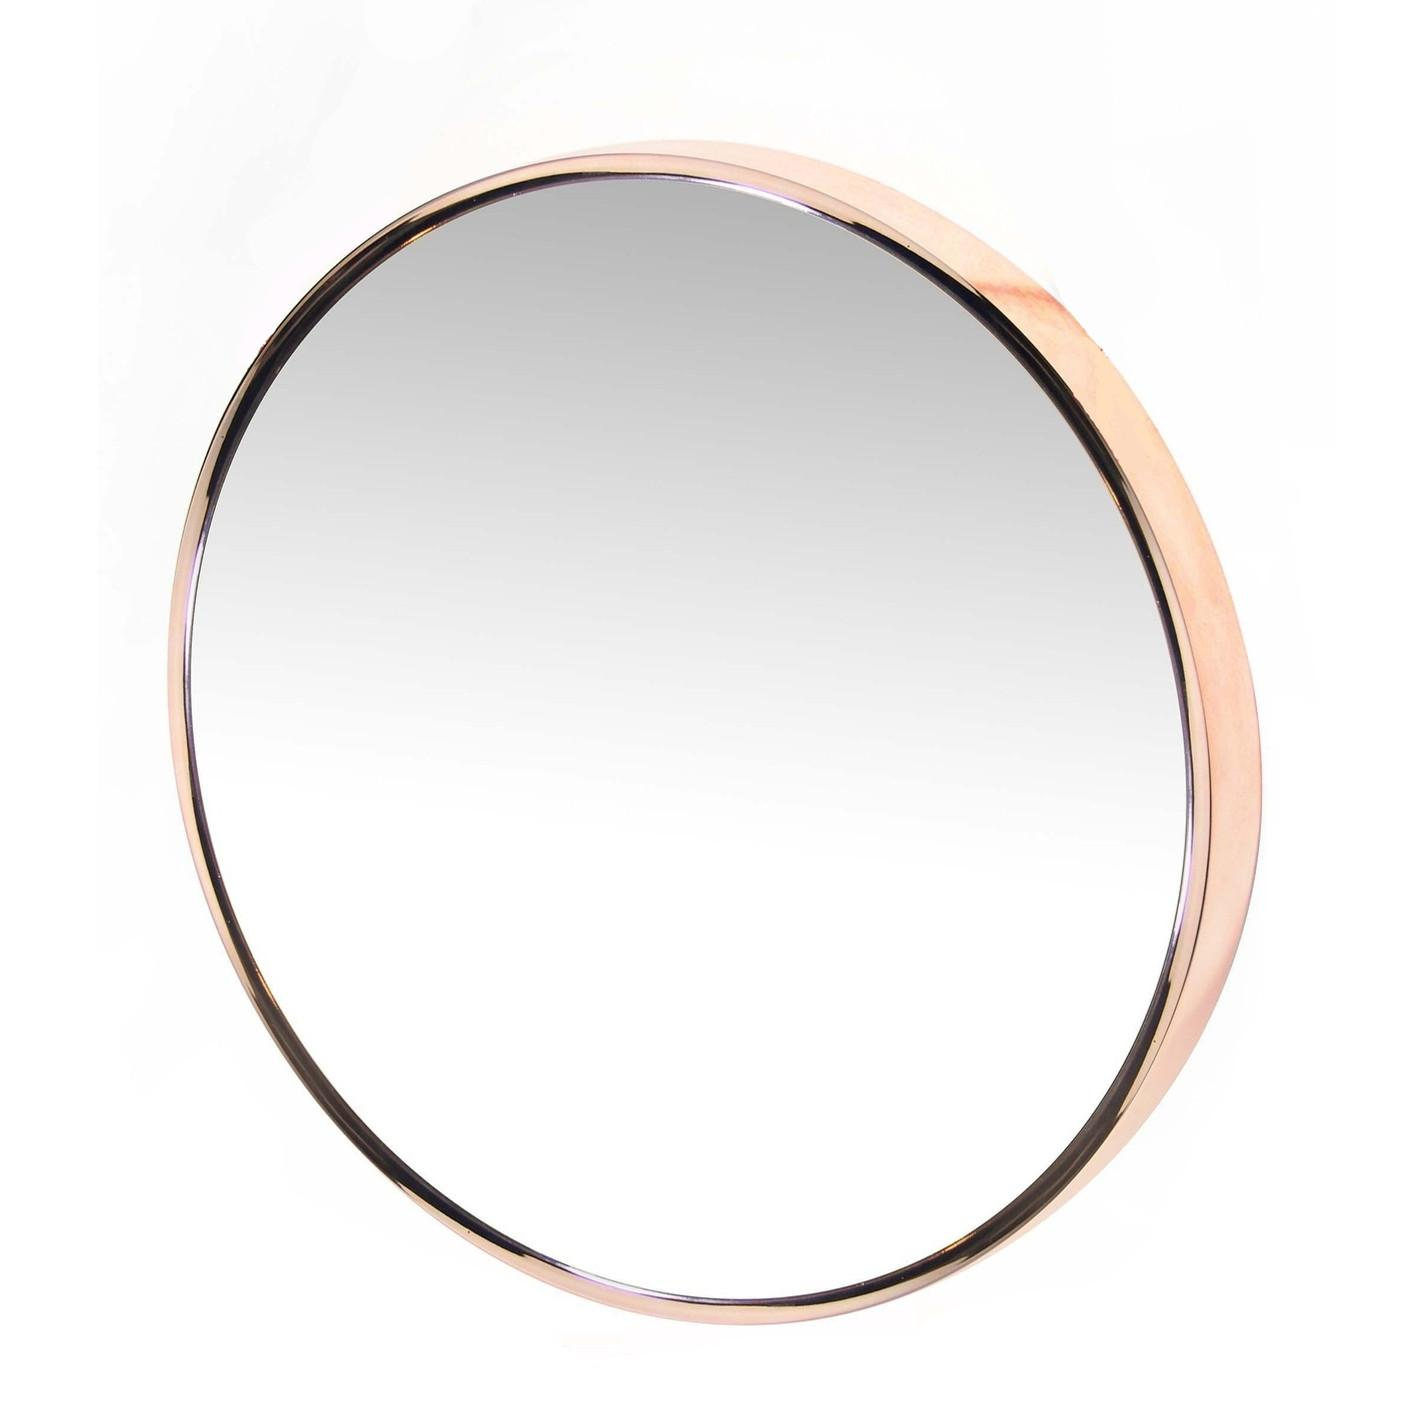 Rose Gold Bathroom Wall Mirror New Modern Colors Home Decor Household